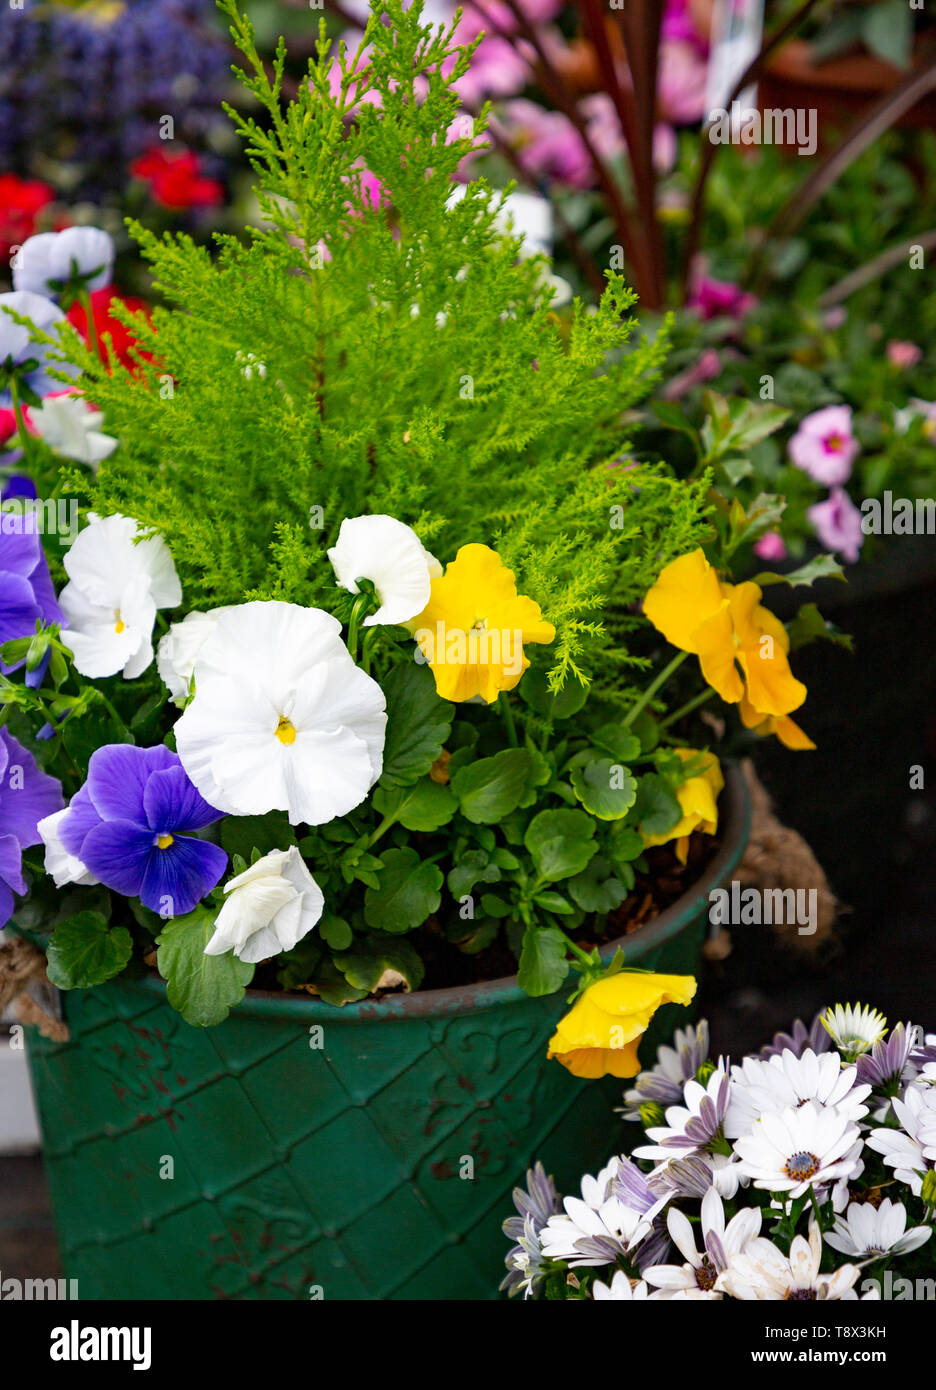 Green container planted with Violas and a Conifer - Stock Image